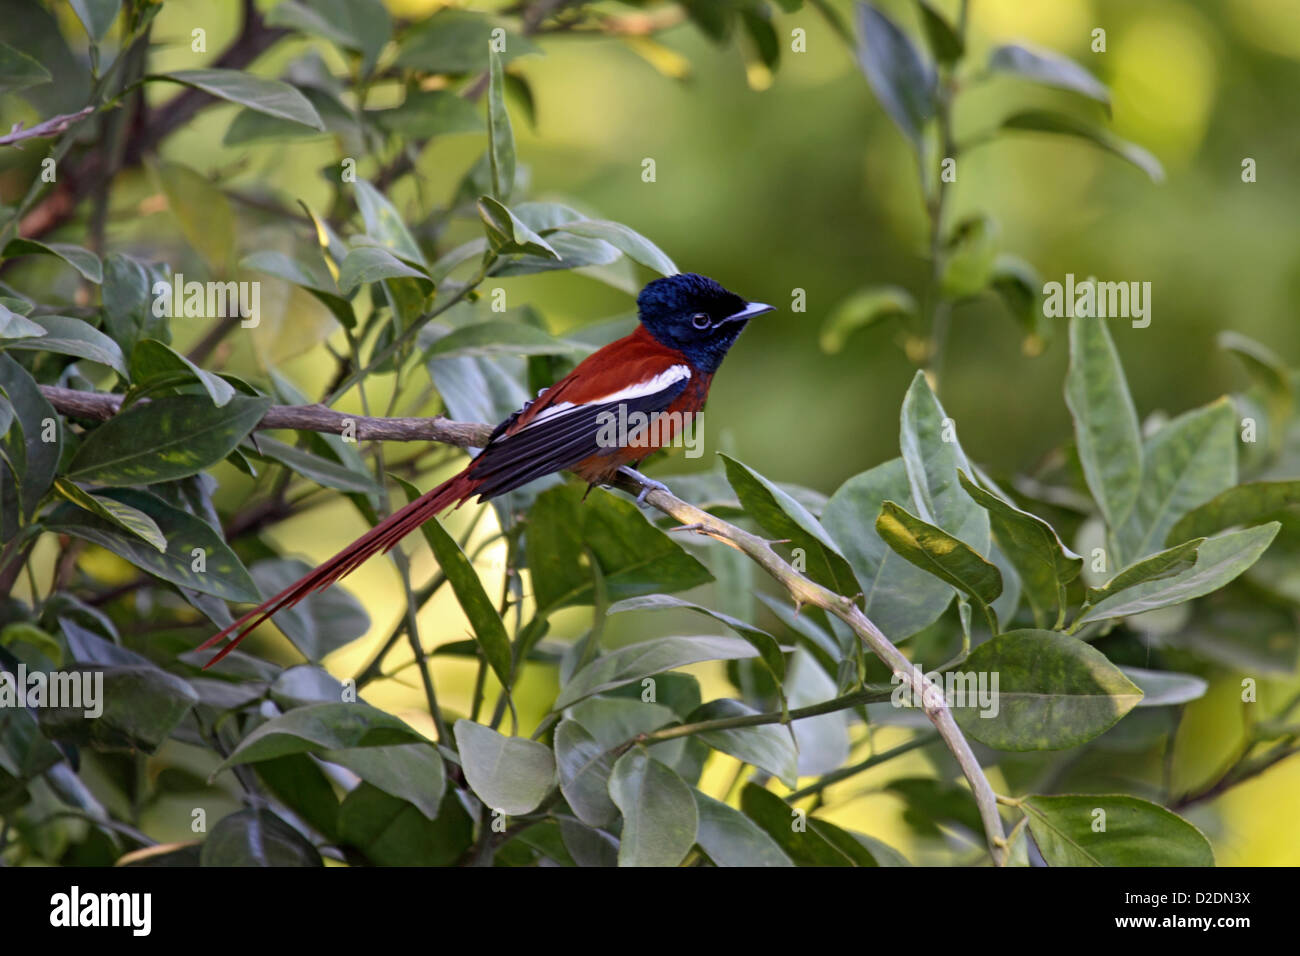 Hybrid paradise flycatcher in tree in The Gambia Stock Photo